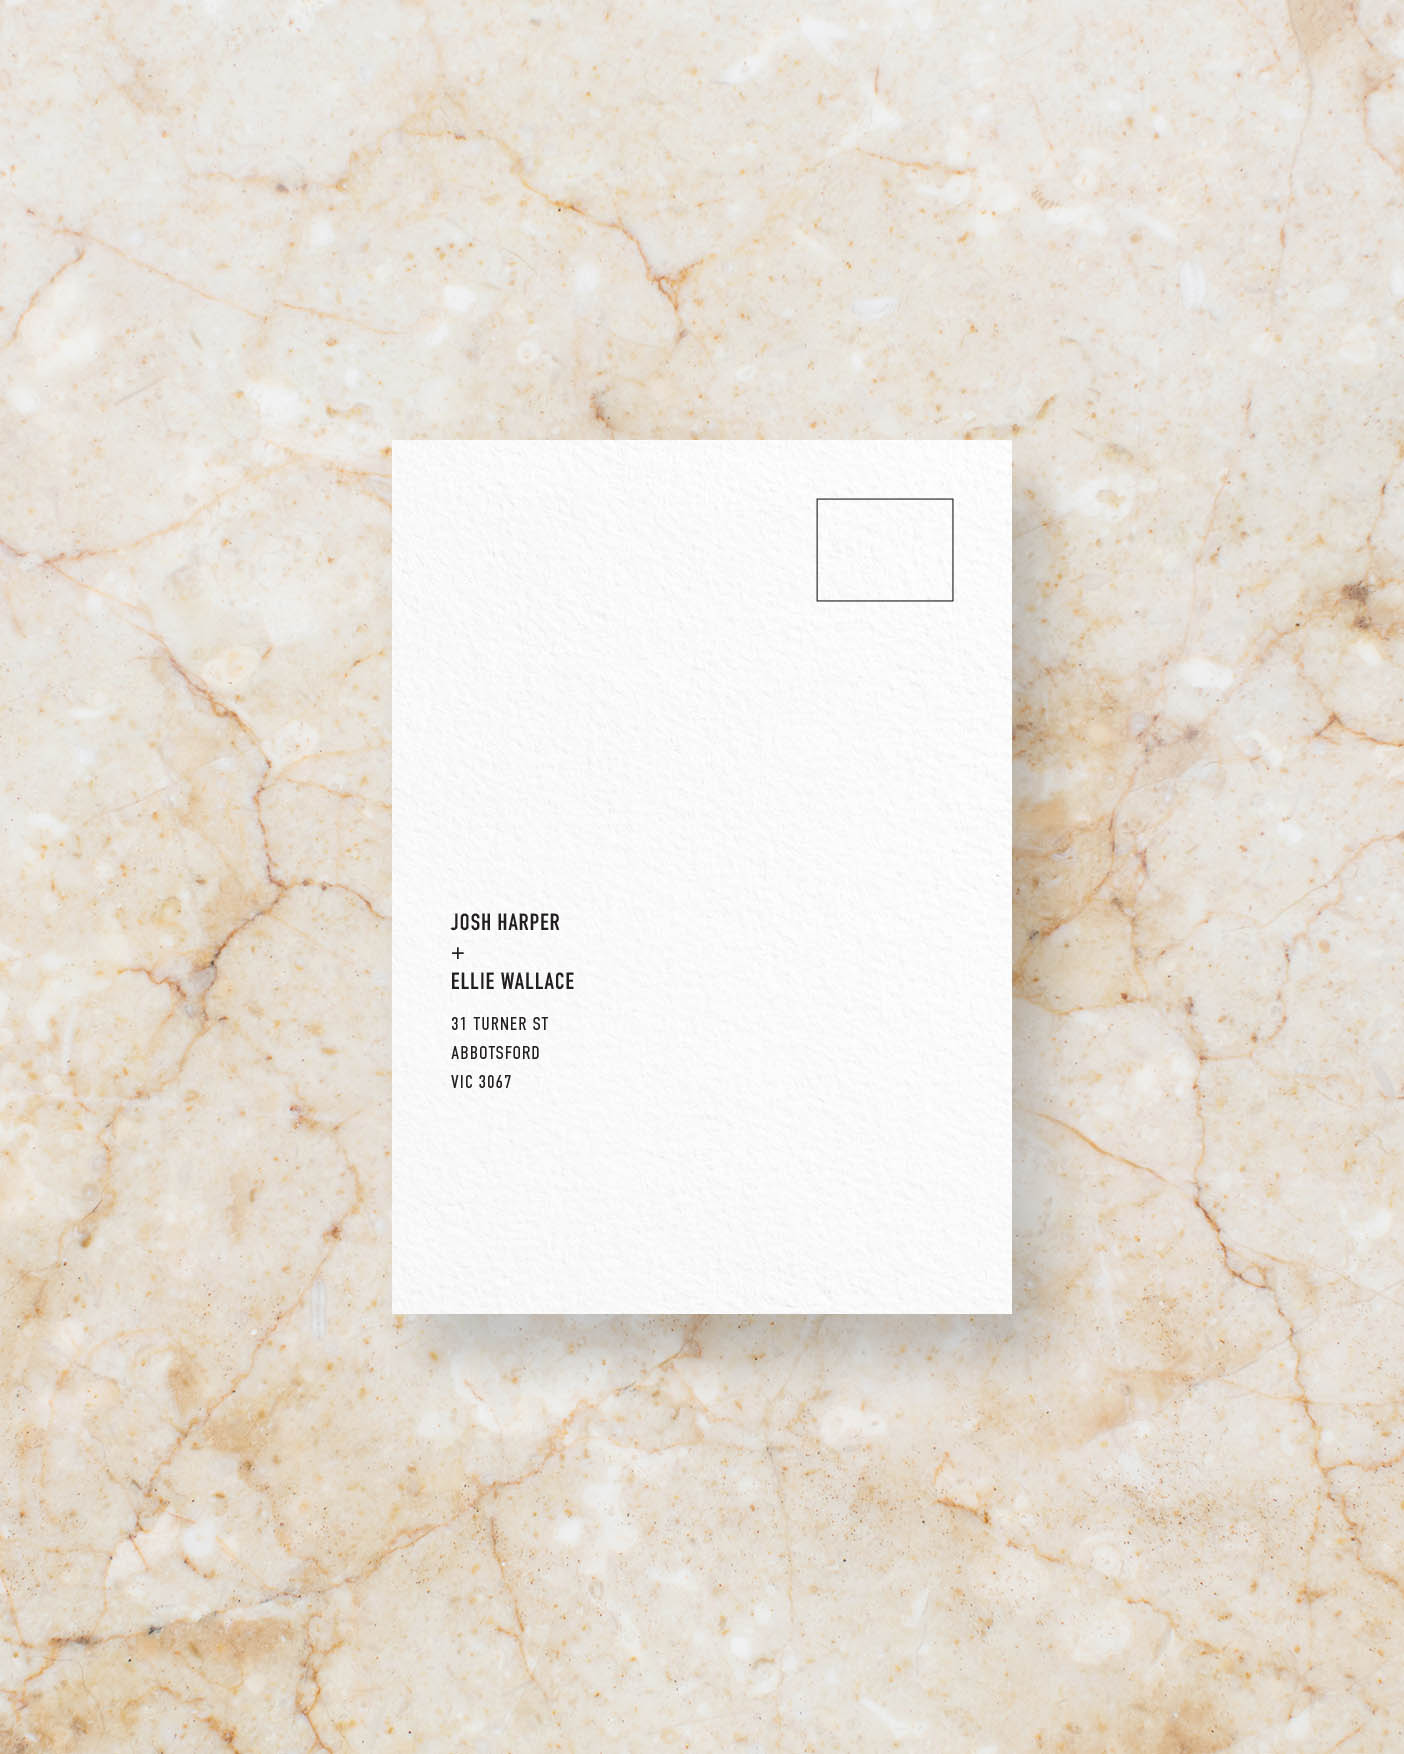 RSVP Card Front - White